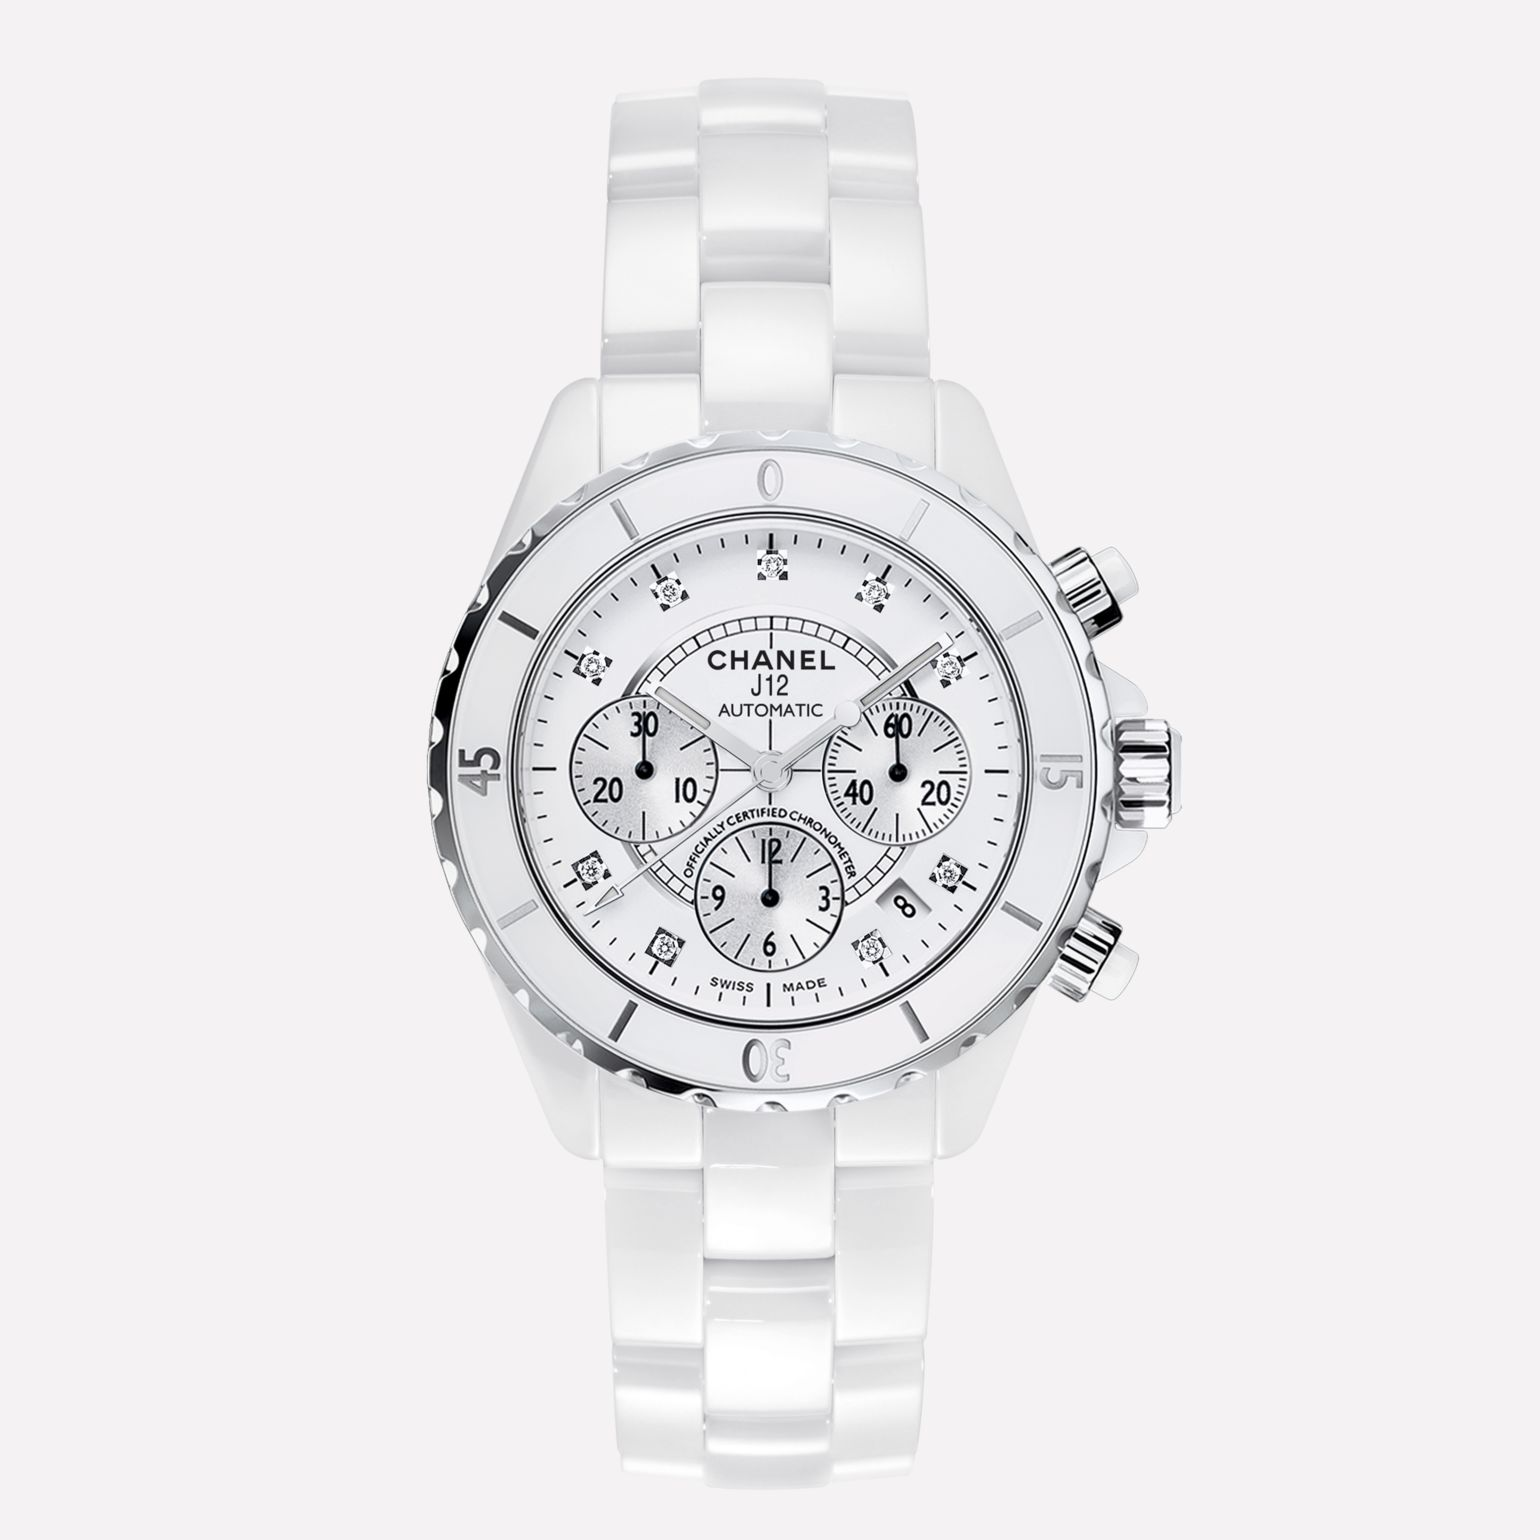 J12 Chronograph Watch, 41 mm  White highly-resistant ceramic and steel, diamond indicators